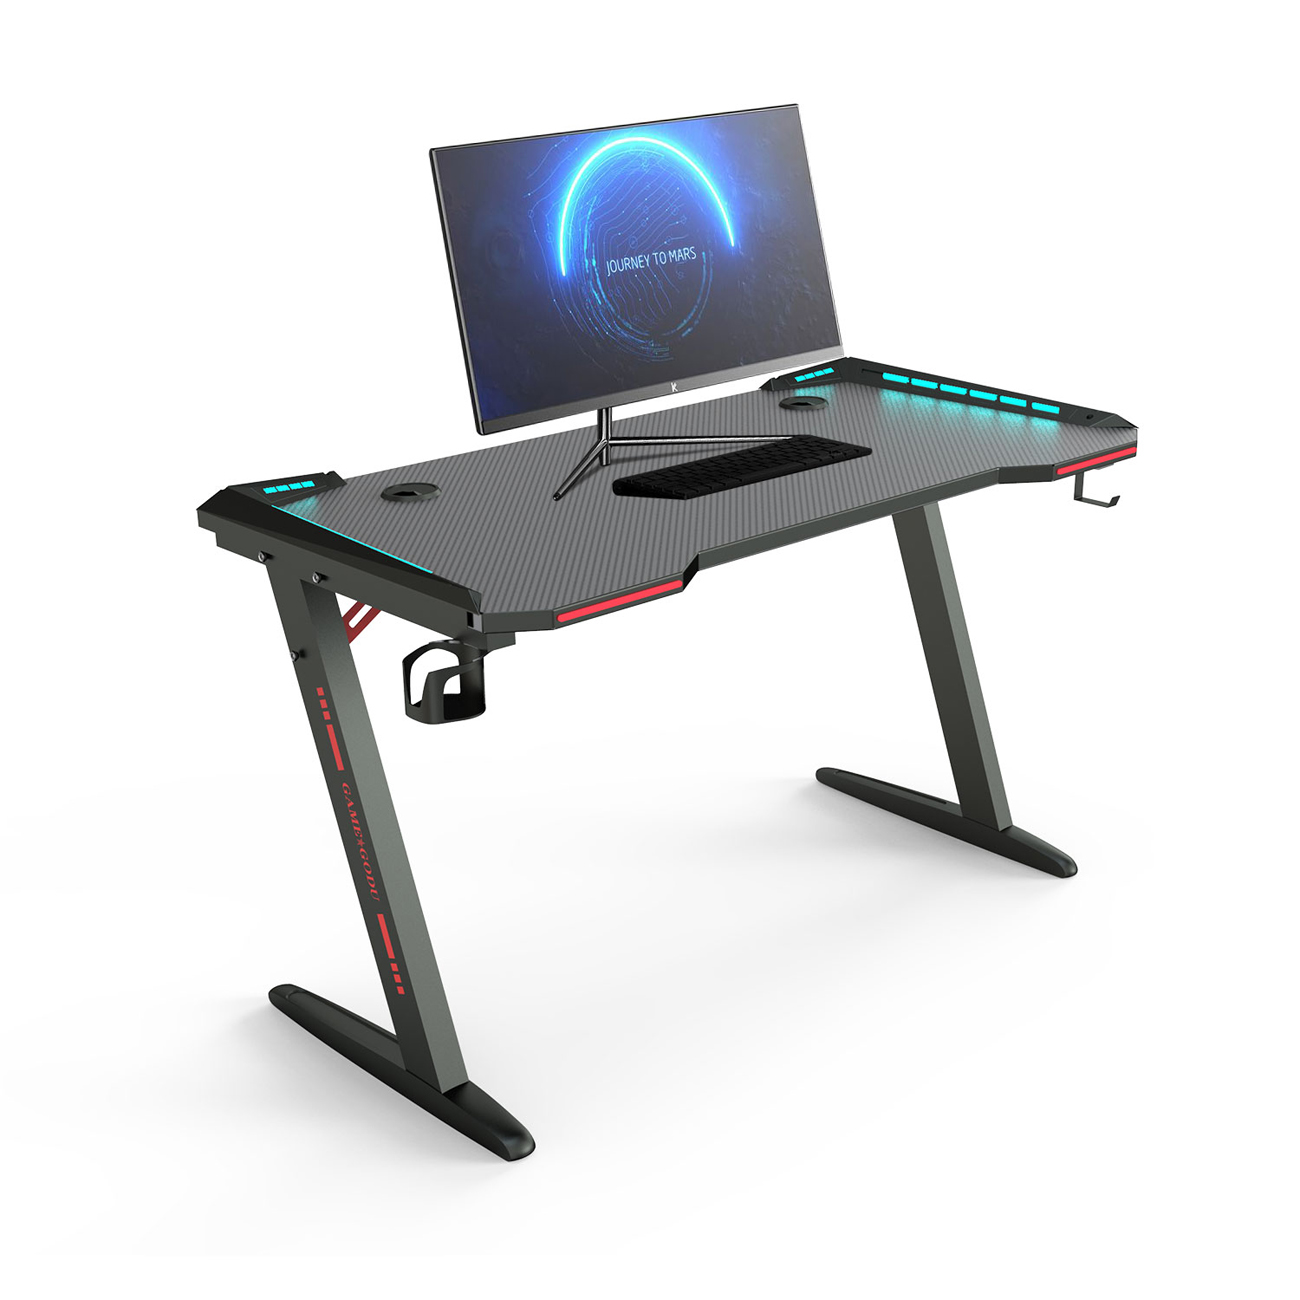 Large PC Computer Gaming Desk